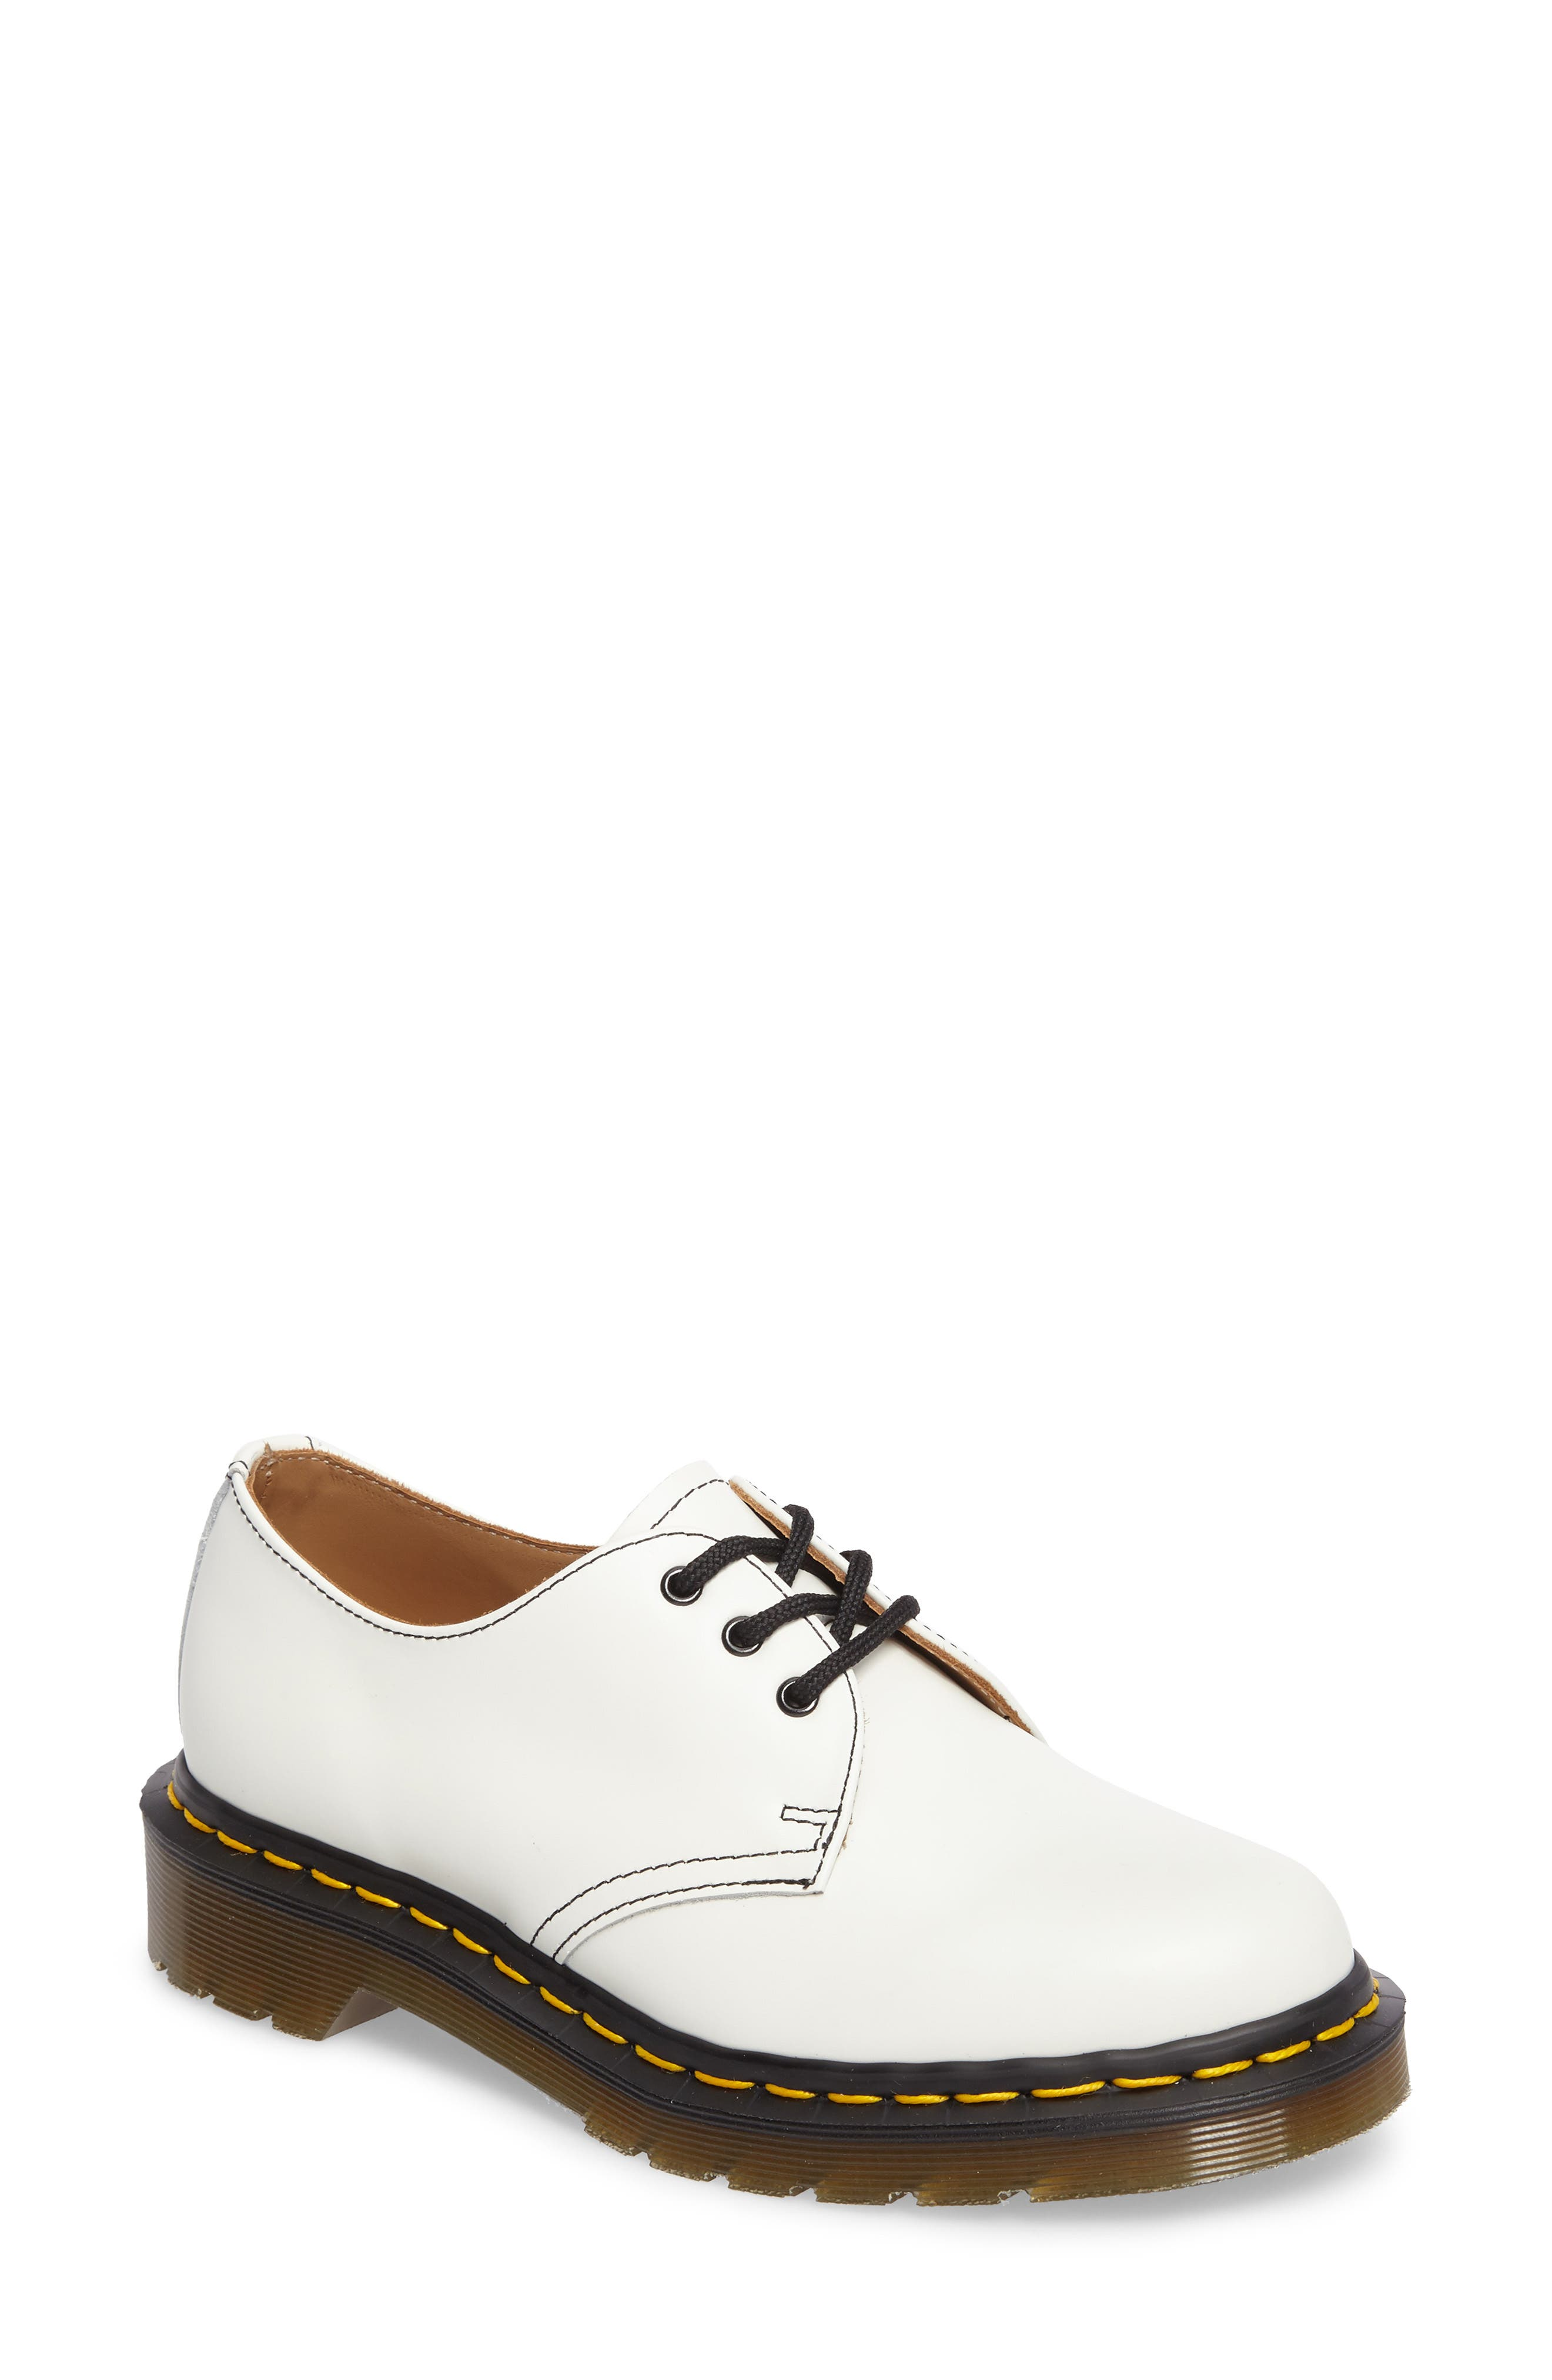 x Dr. Martens Pointy Toe Oxford,                             Main thumbnail 1, color,                             White